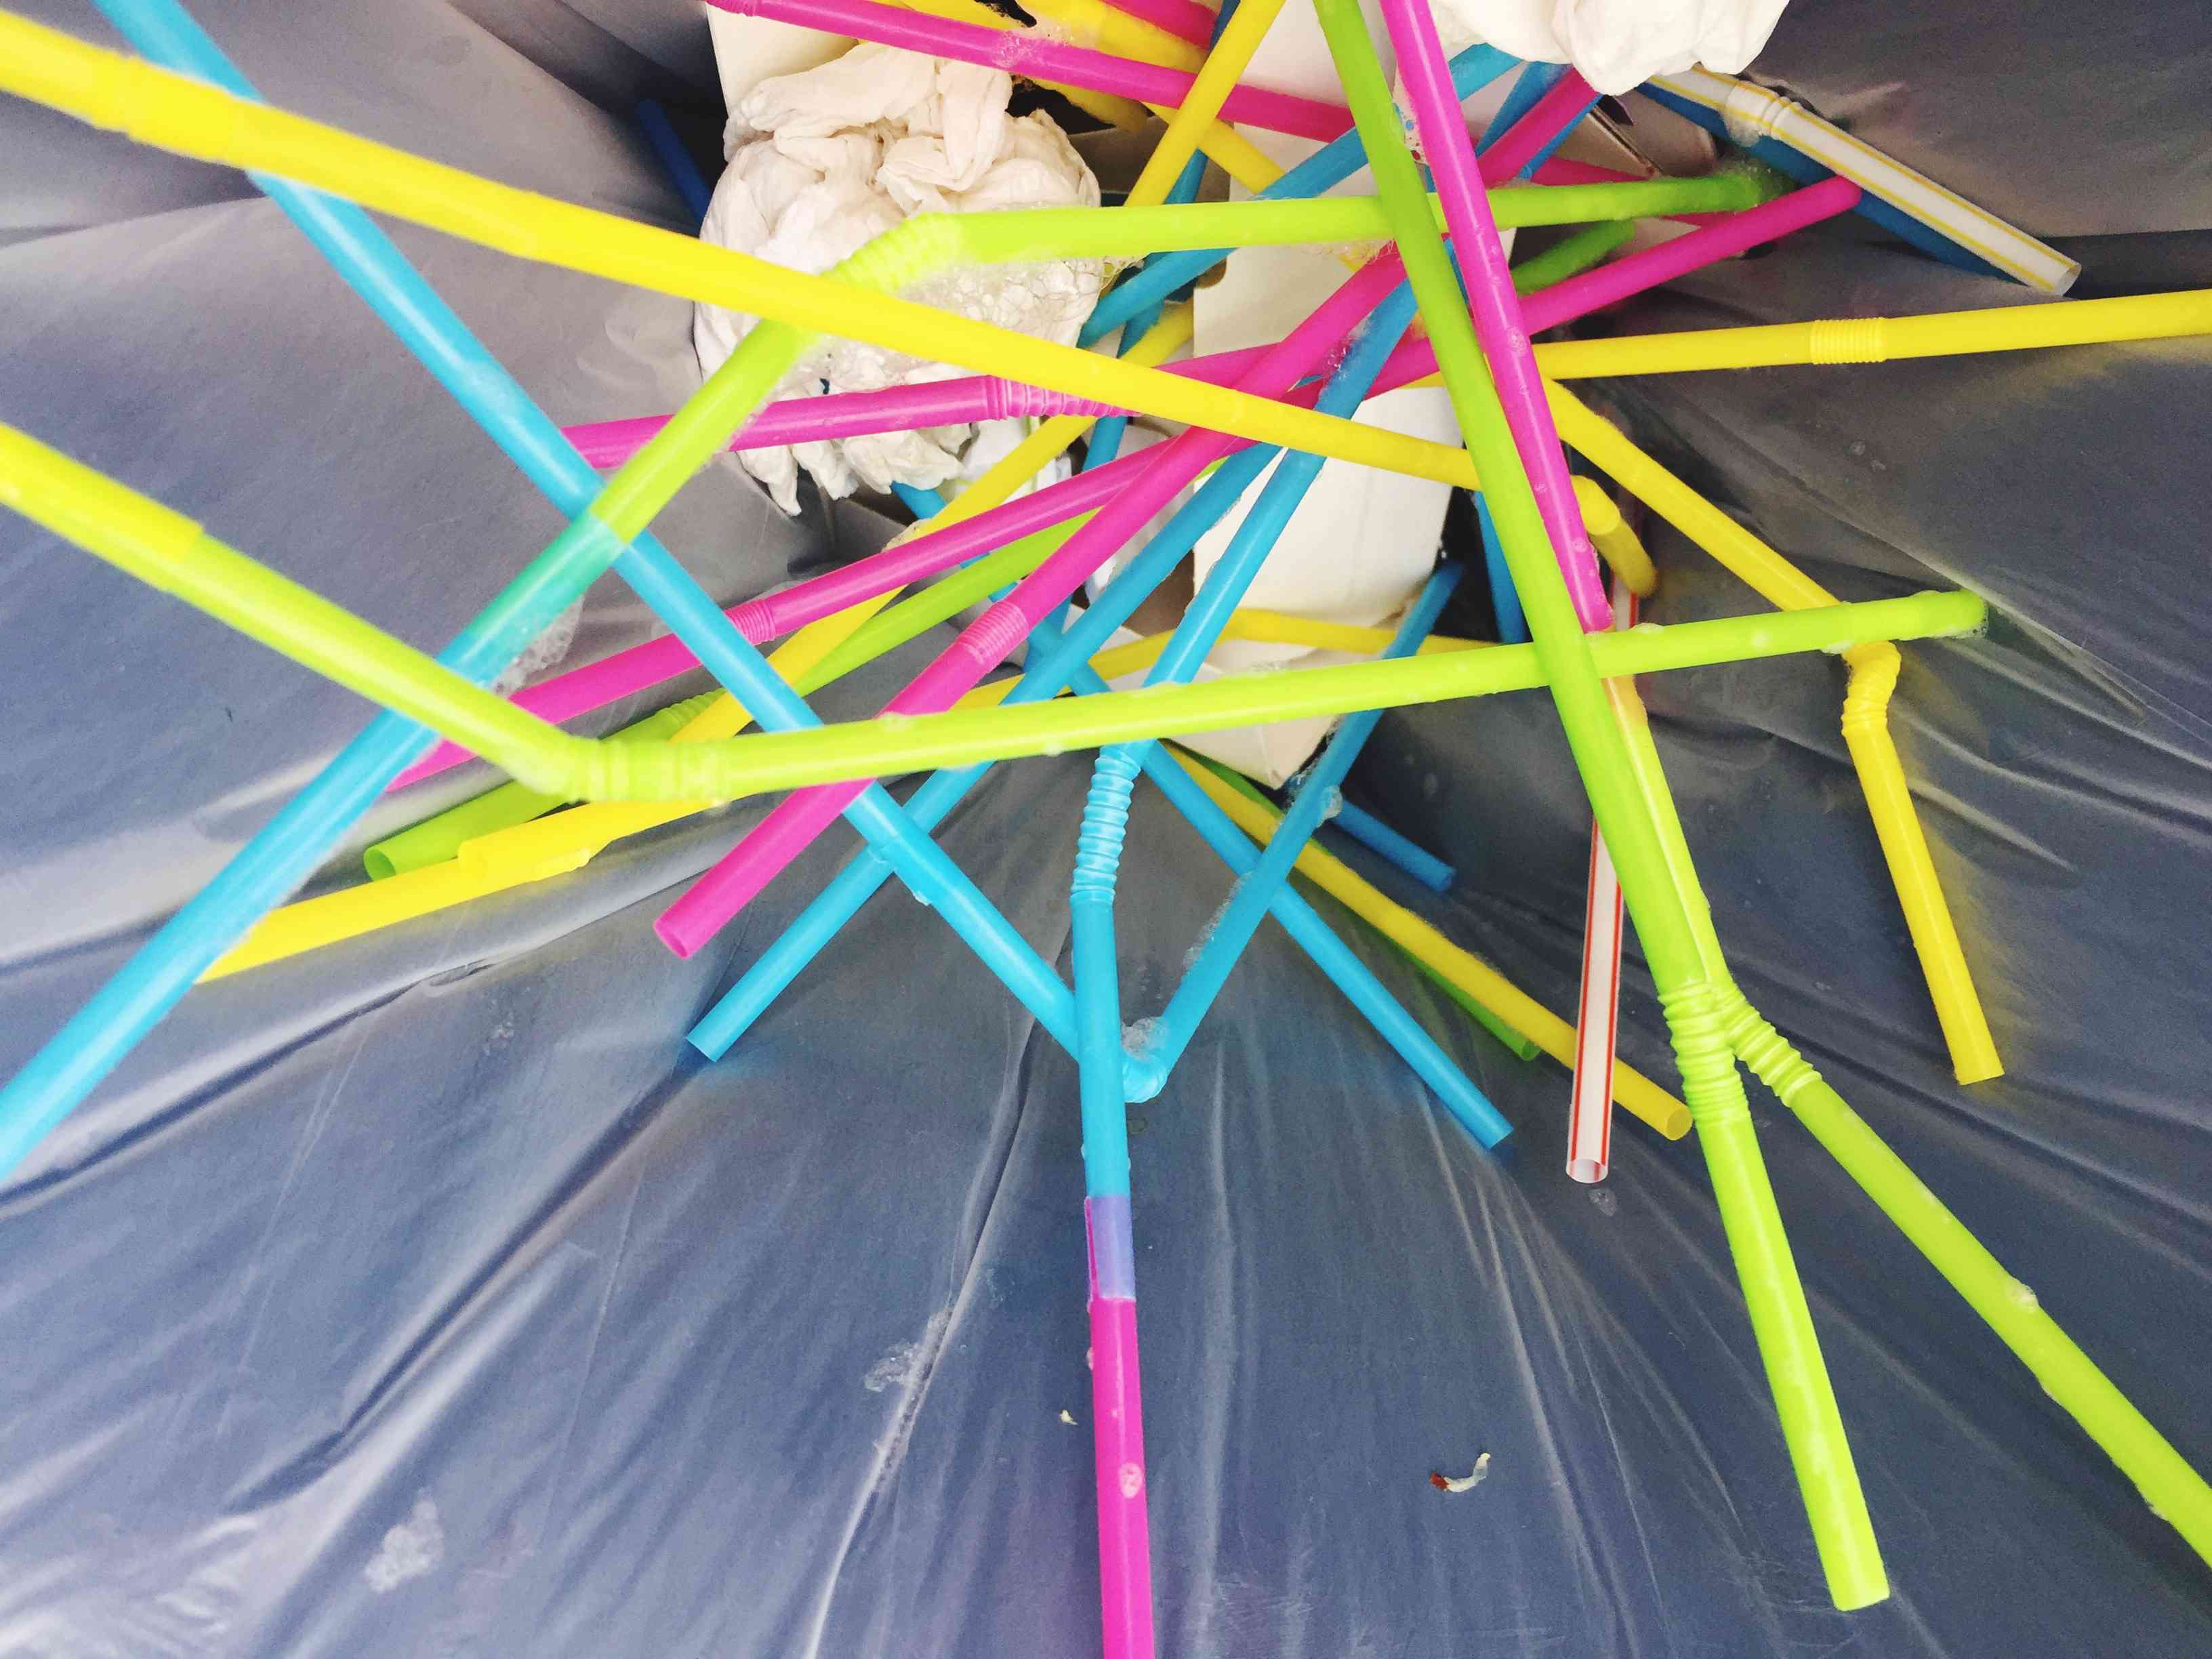 Close-Up Of Colorful Drinking Straws In Garbage Bin